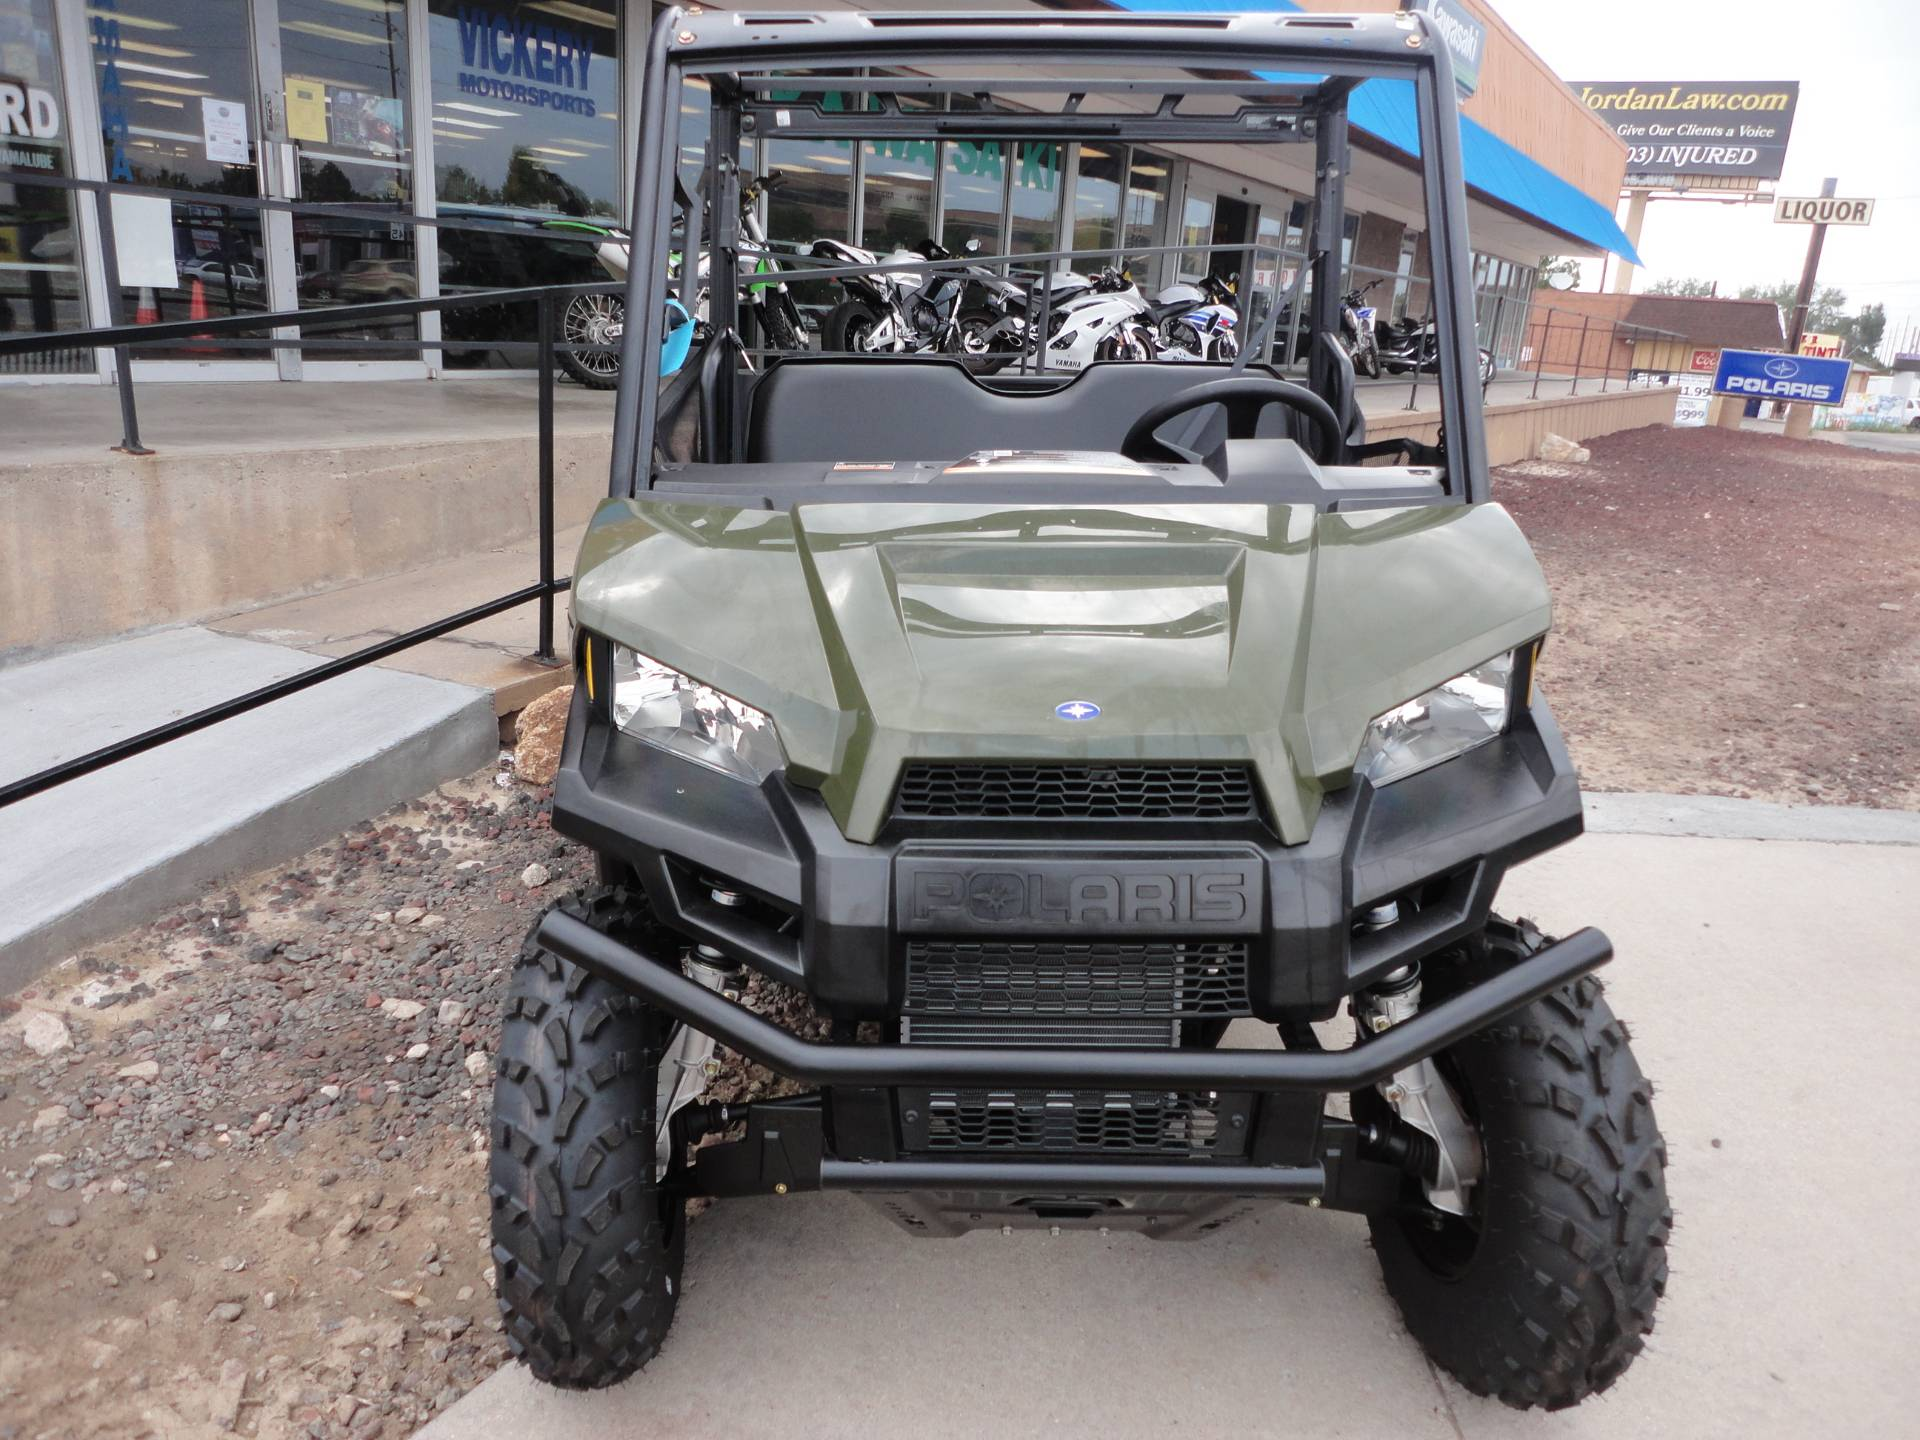 2020 Polaris Ranger 570 in Denver, Colorado - Photo 5